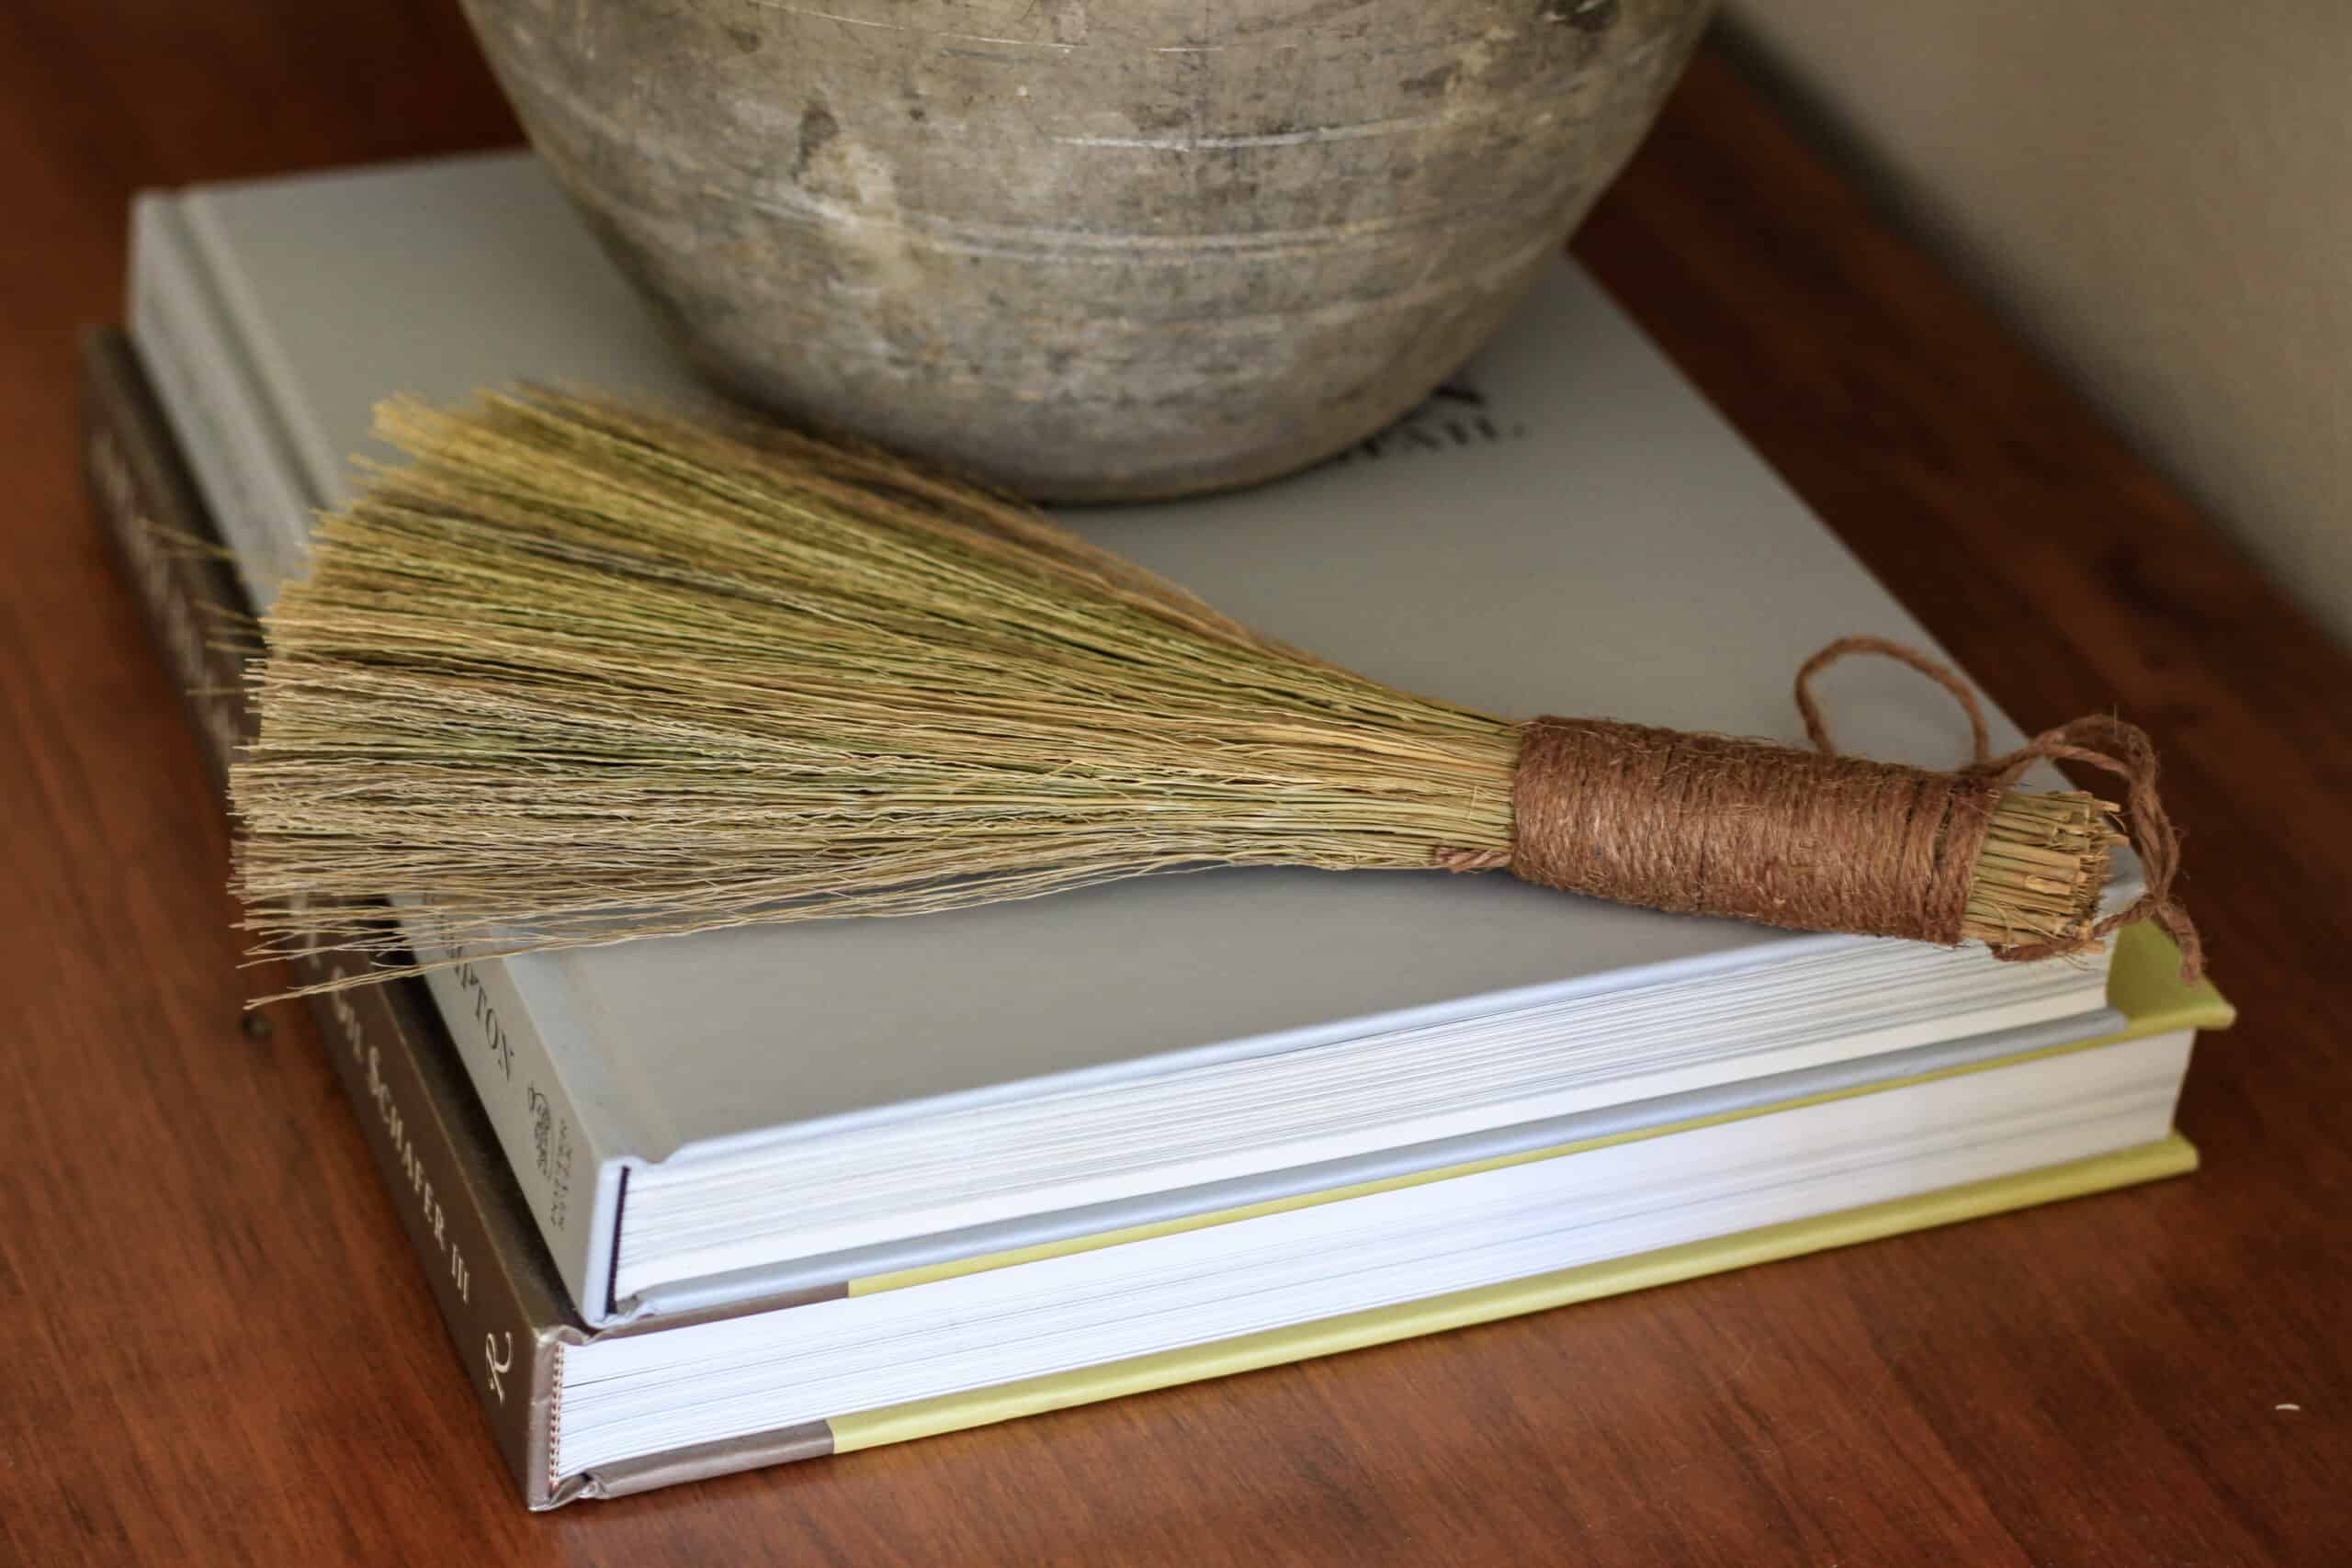 antique hand broom on stack of books